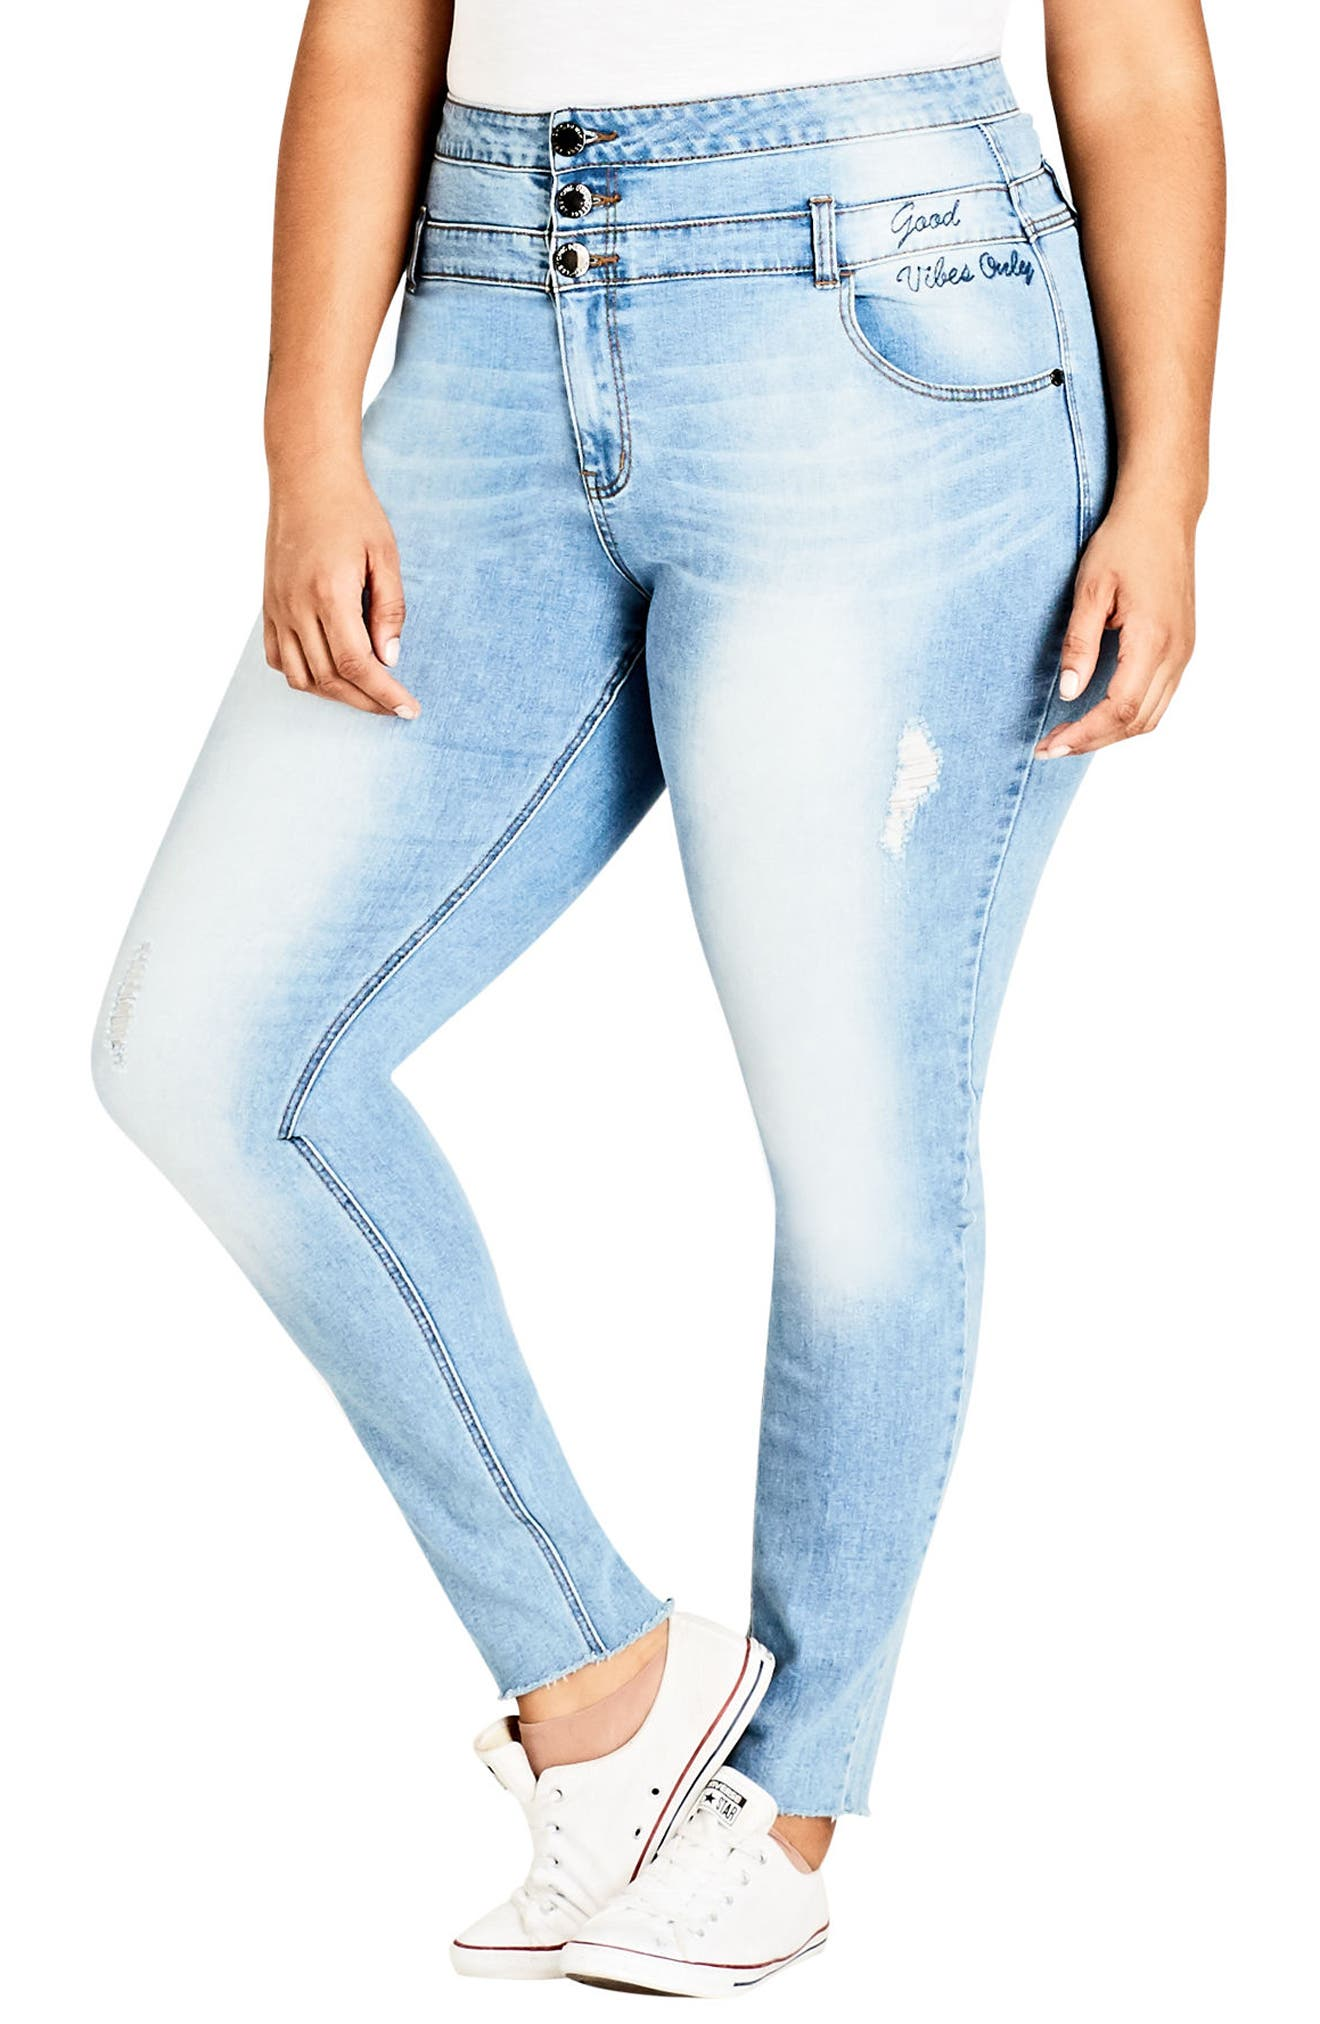 Harley Vibes Ripped Corset Skinny Jeans,                         Main,                         color, 410